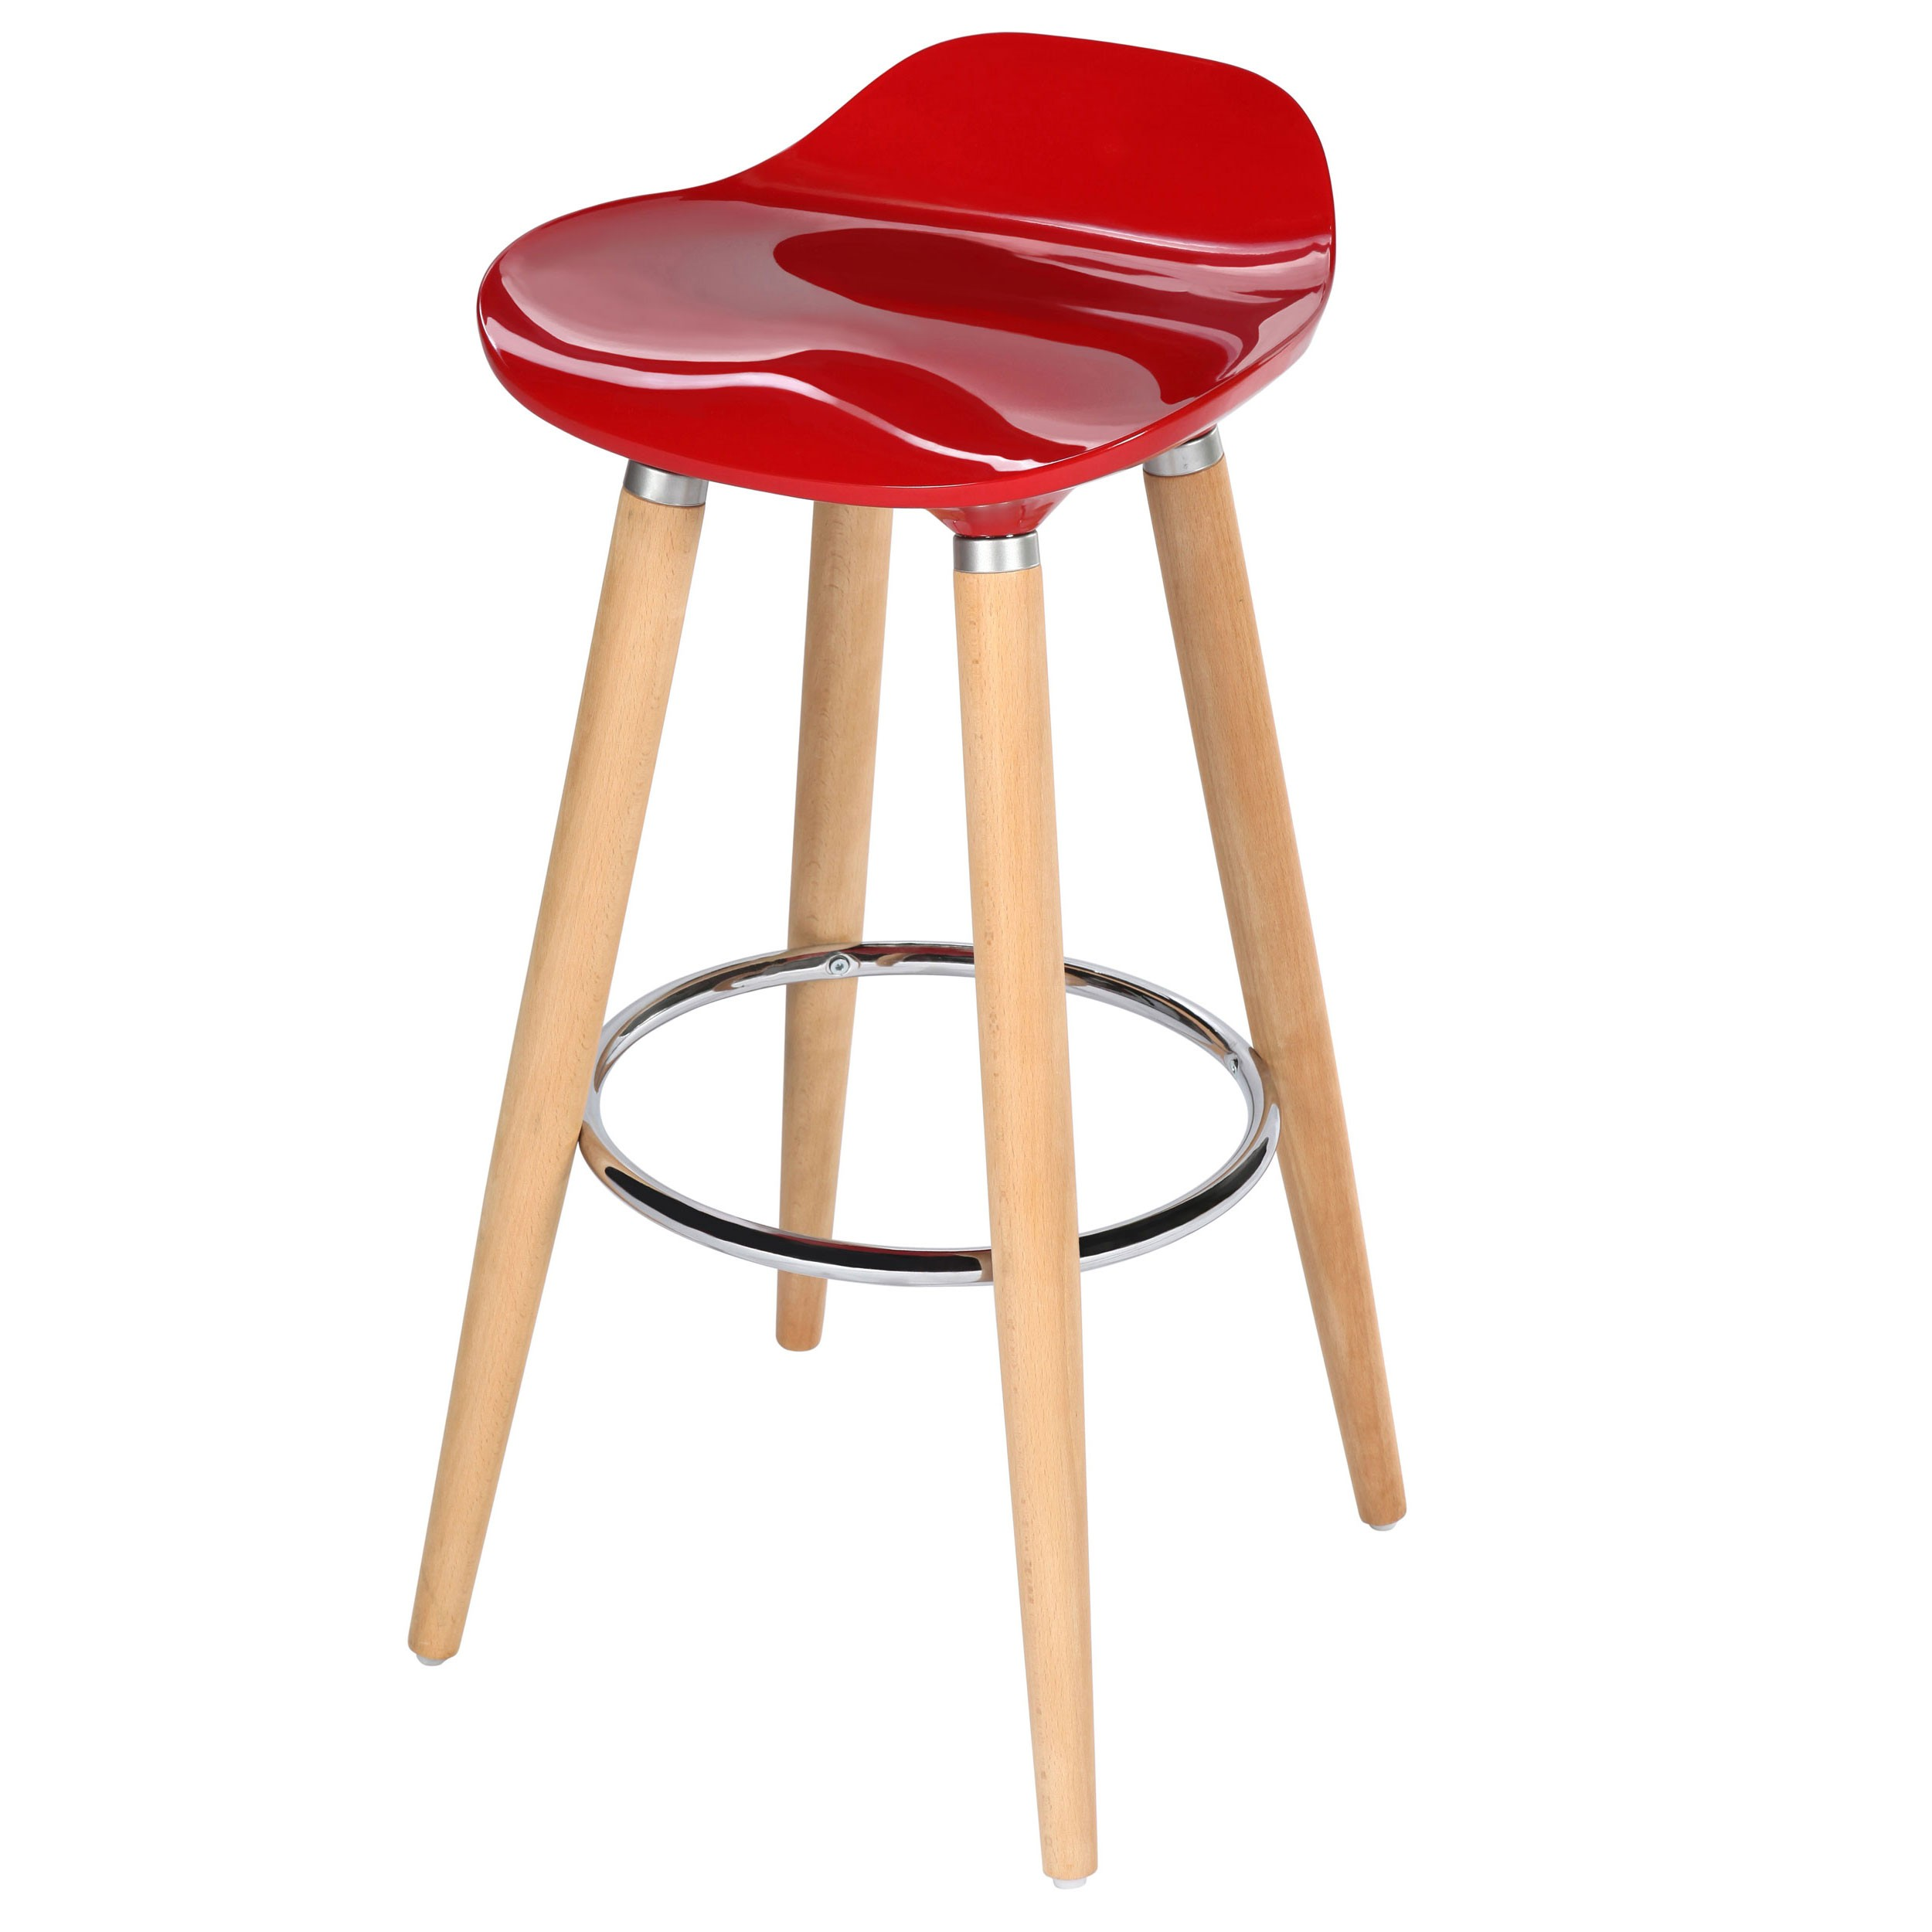 Tabouret de bar italien rouge achetez nos tabourets de bar italiens rouges rdv d co - Tabouret de bar design rouge ...